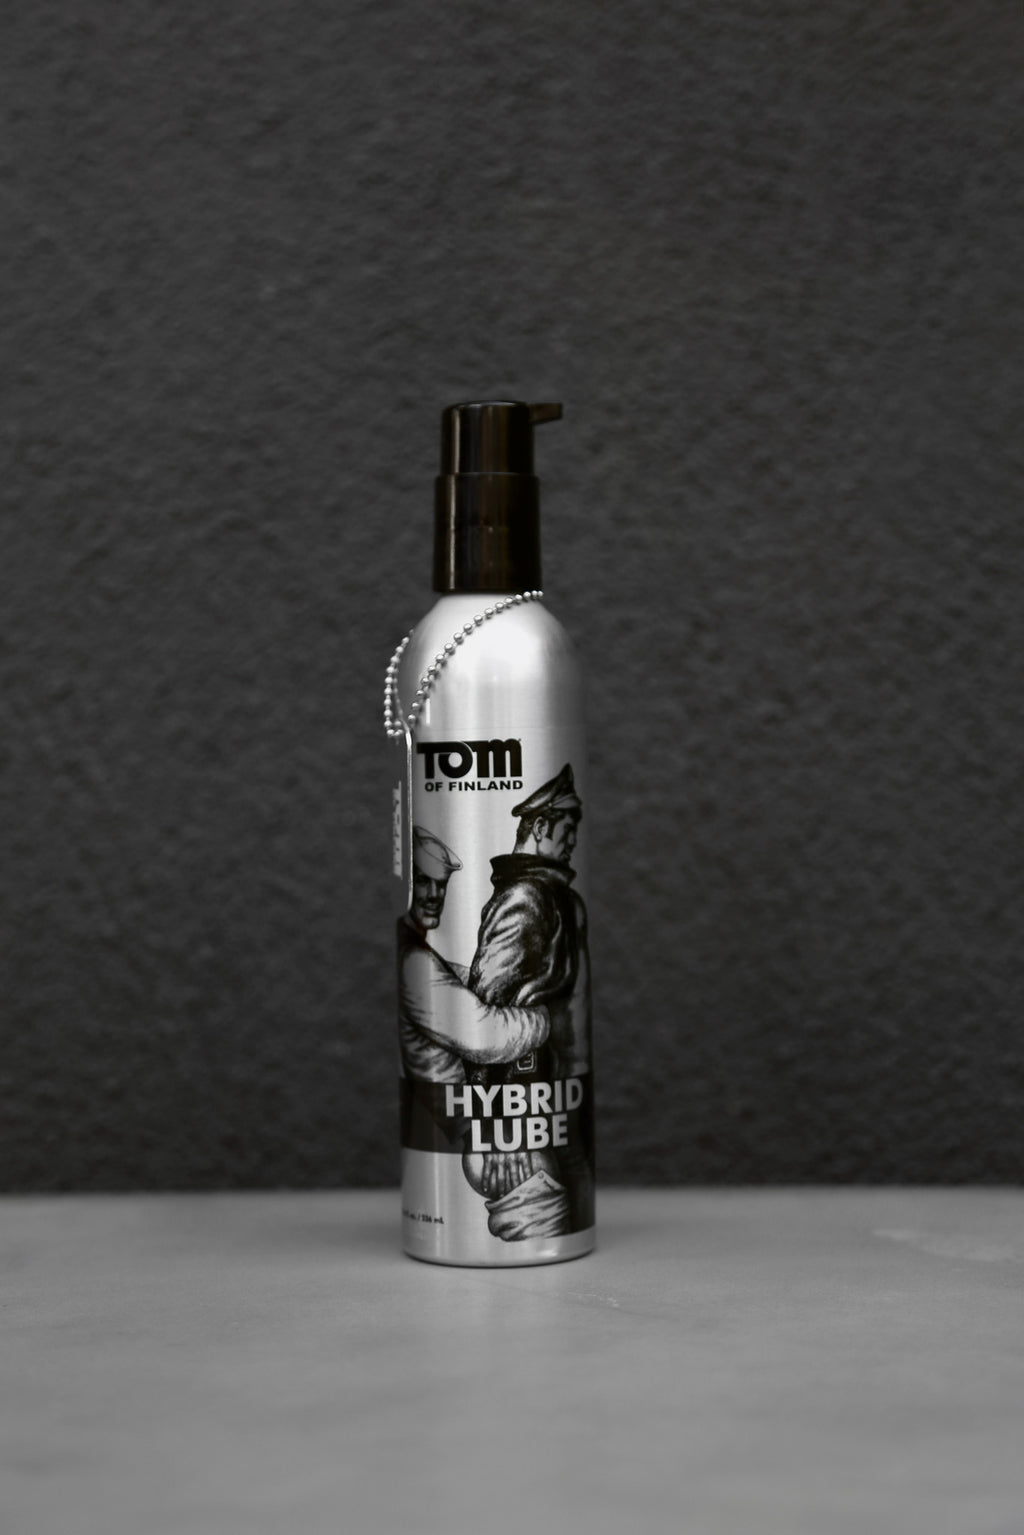 Tom of Finland Hybrid Lube